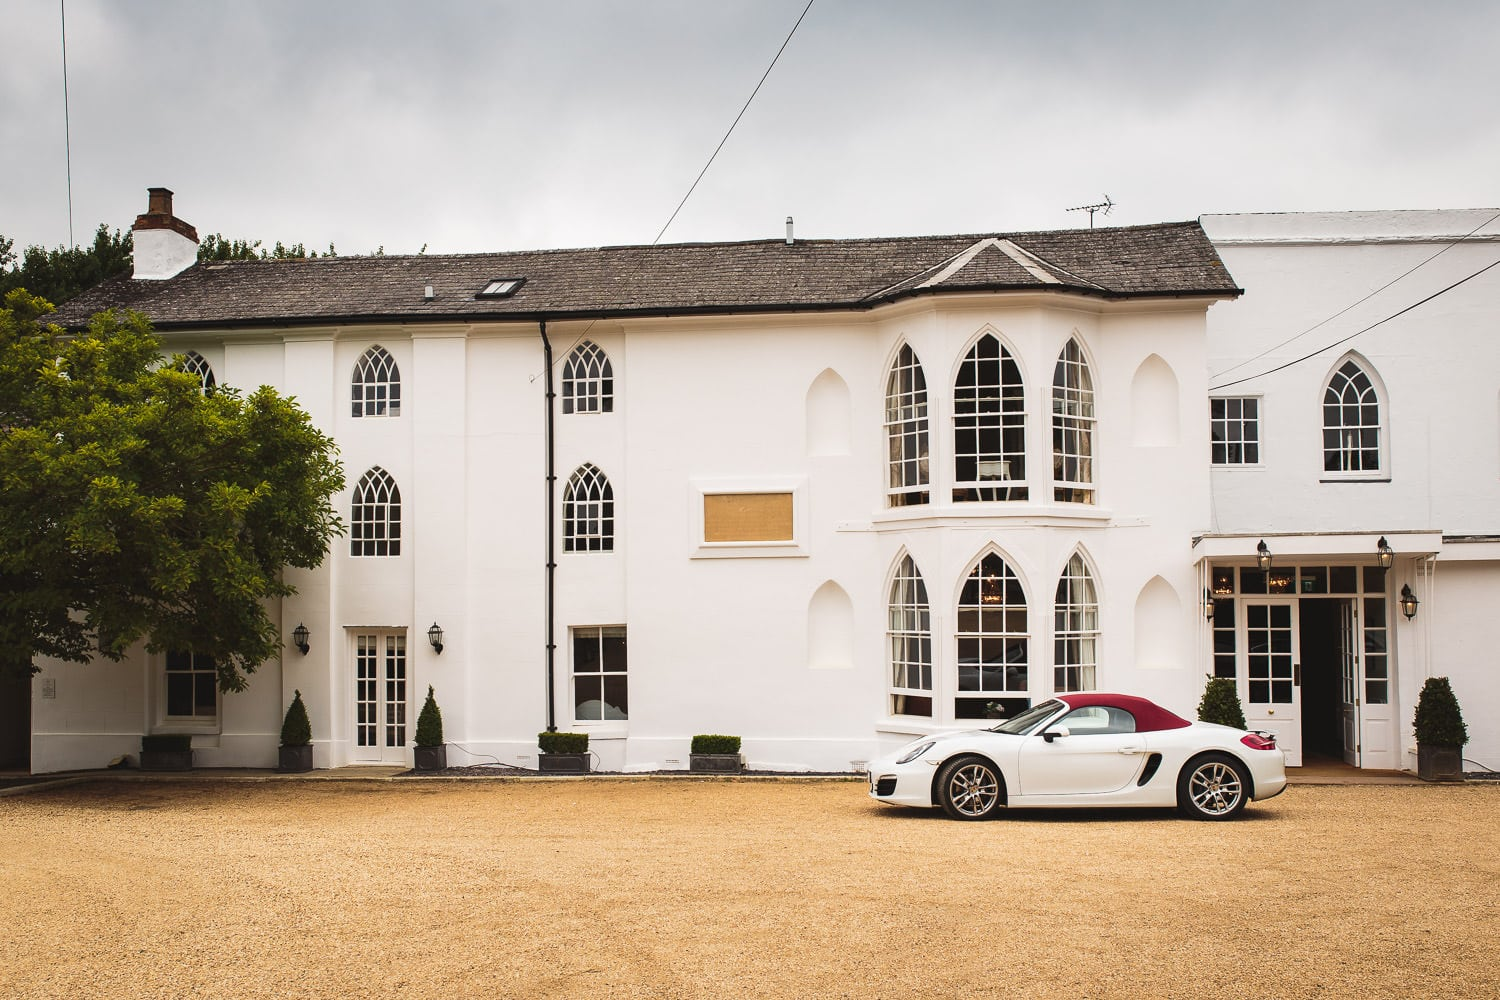 porsche parked outside warwick house wedding venue ready to whisk away newlyweds